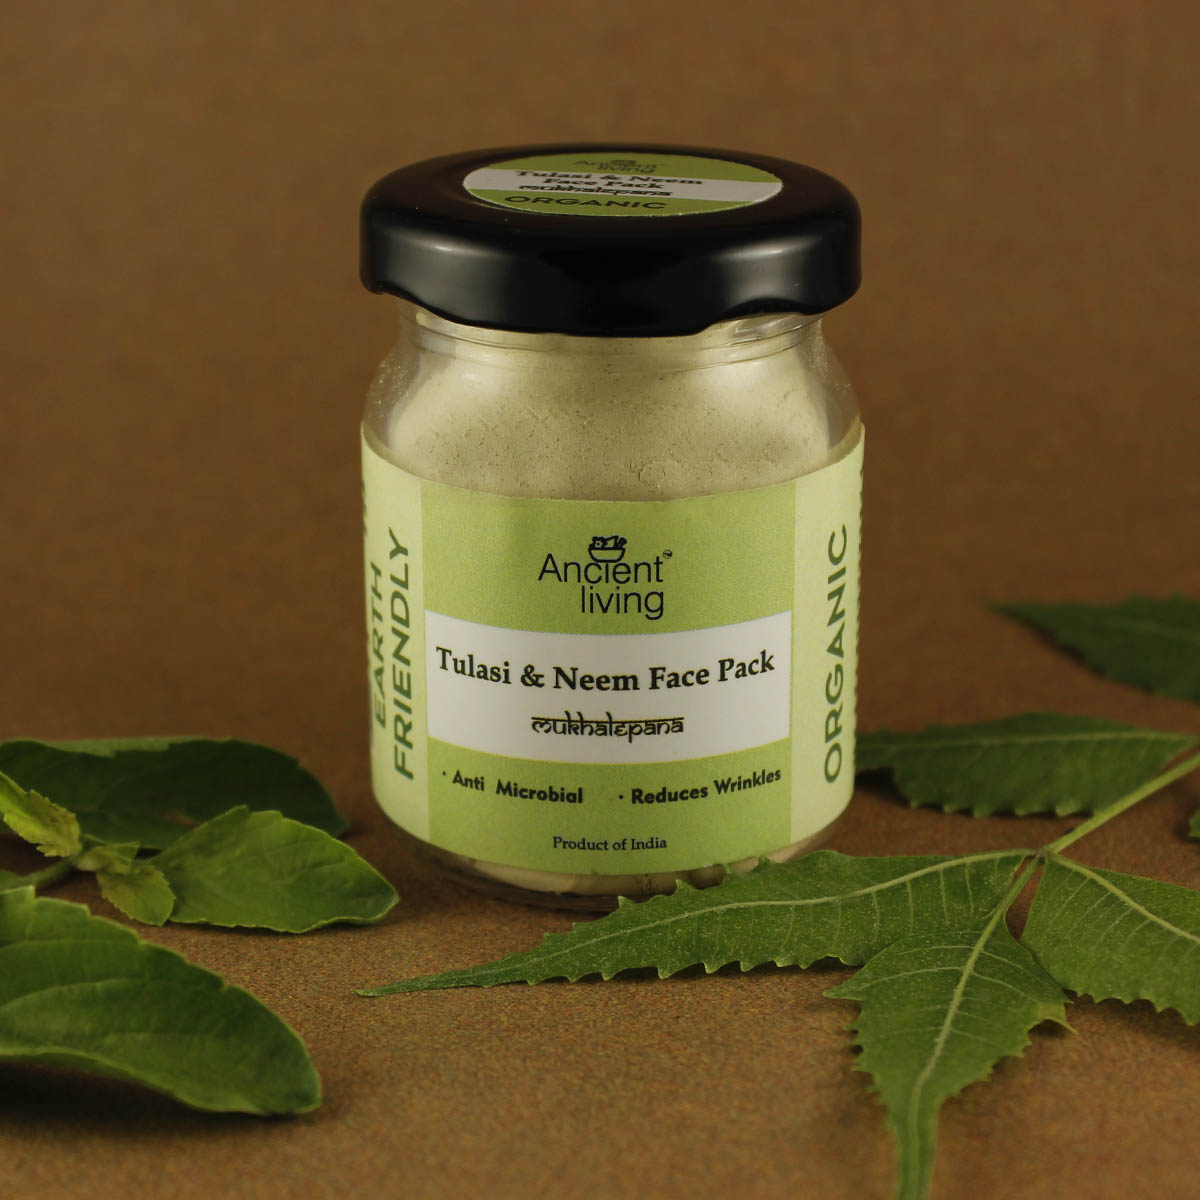 Tulasi & Neem Face Pack (20gms & 40gms)